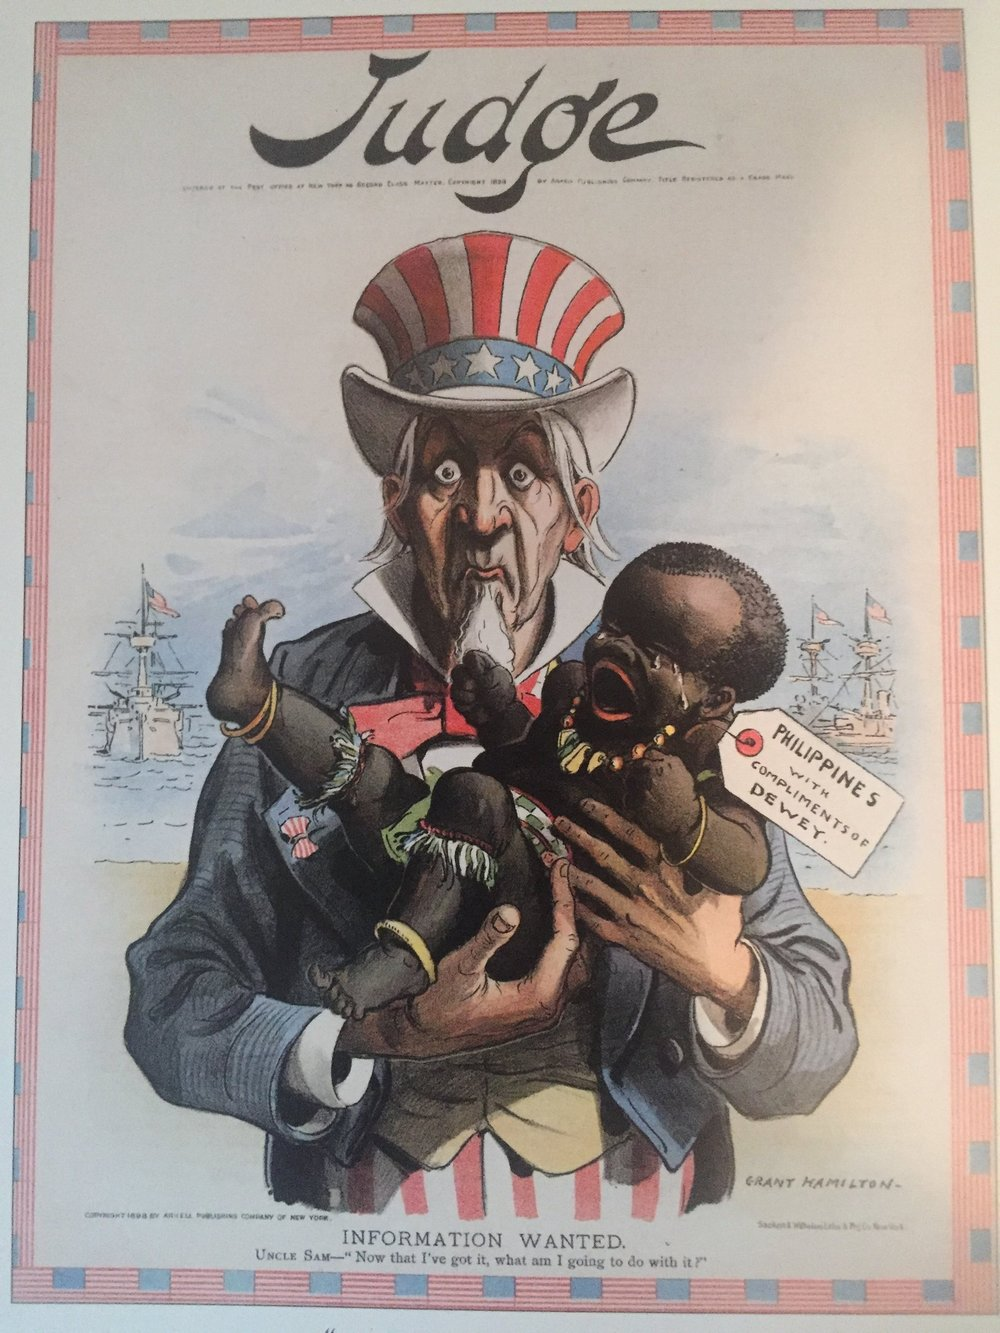 """INFORMATION WANTED: Uncle Sam - 'Now that I've got it, what am I going to do with it?'"" / Illustration by Grant Hamilton, Judge, June 11,1898"